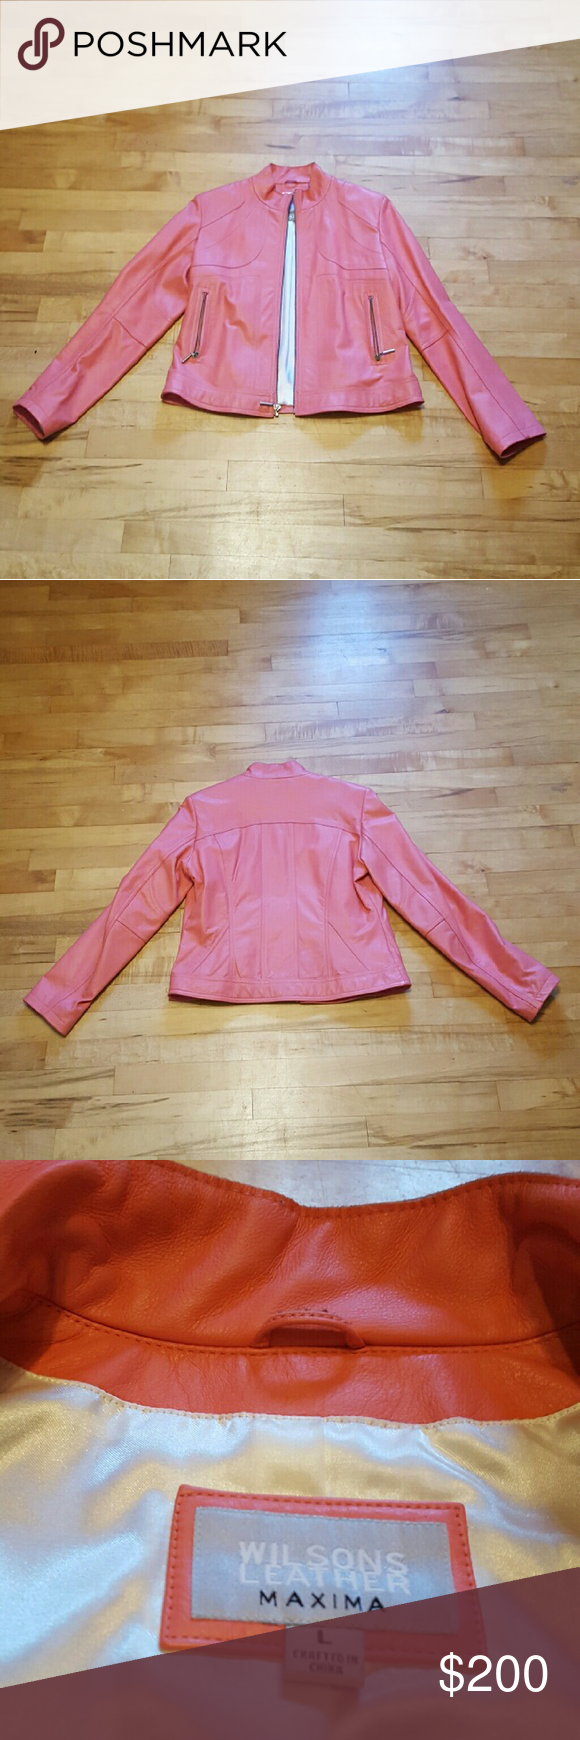 Wilsons Leather Jacket Brand new peach leather jackect. Polyester body lining  and nylon arm lining. Zips in the front with two zip up pockets on the sides. Fits a large but a tiny bit snug would fit a medium for a looser look. Never been worn  dont know why i cut off the tags. Wilsons Leather Jackets & Coats